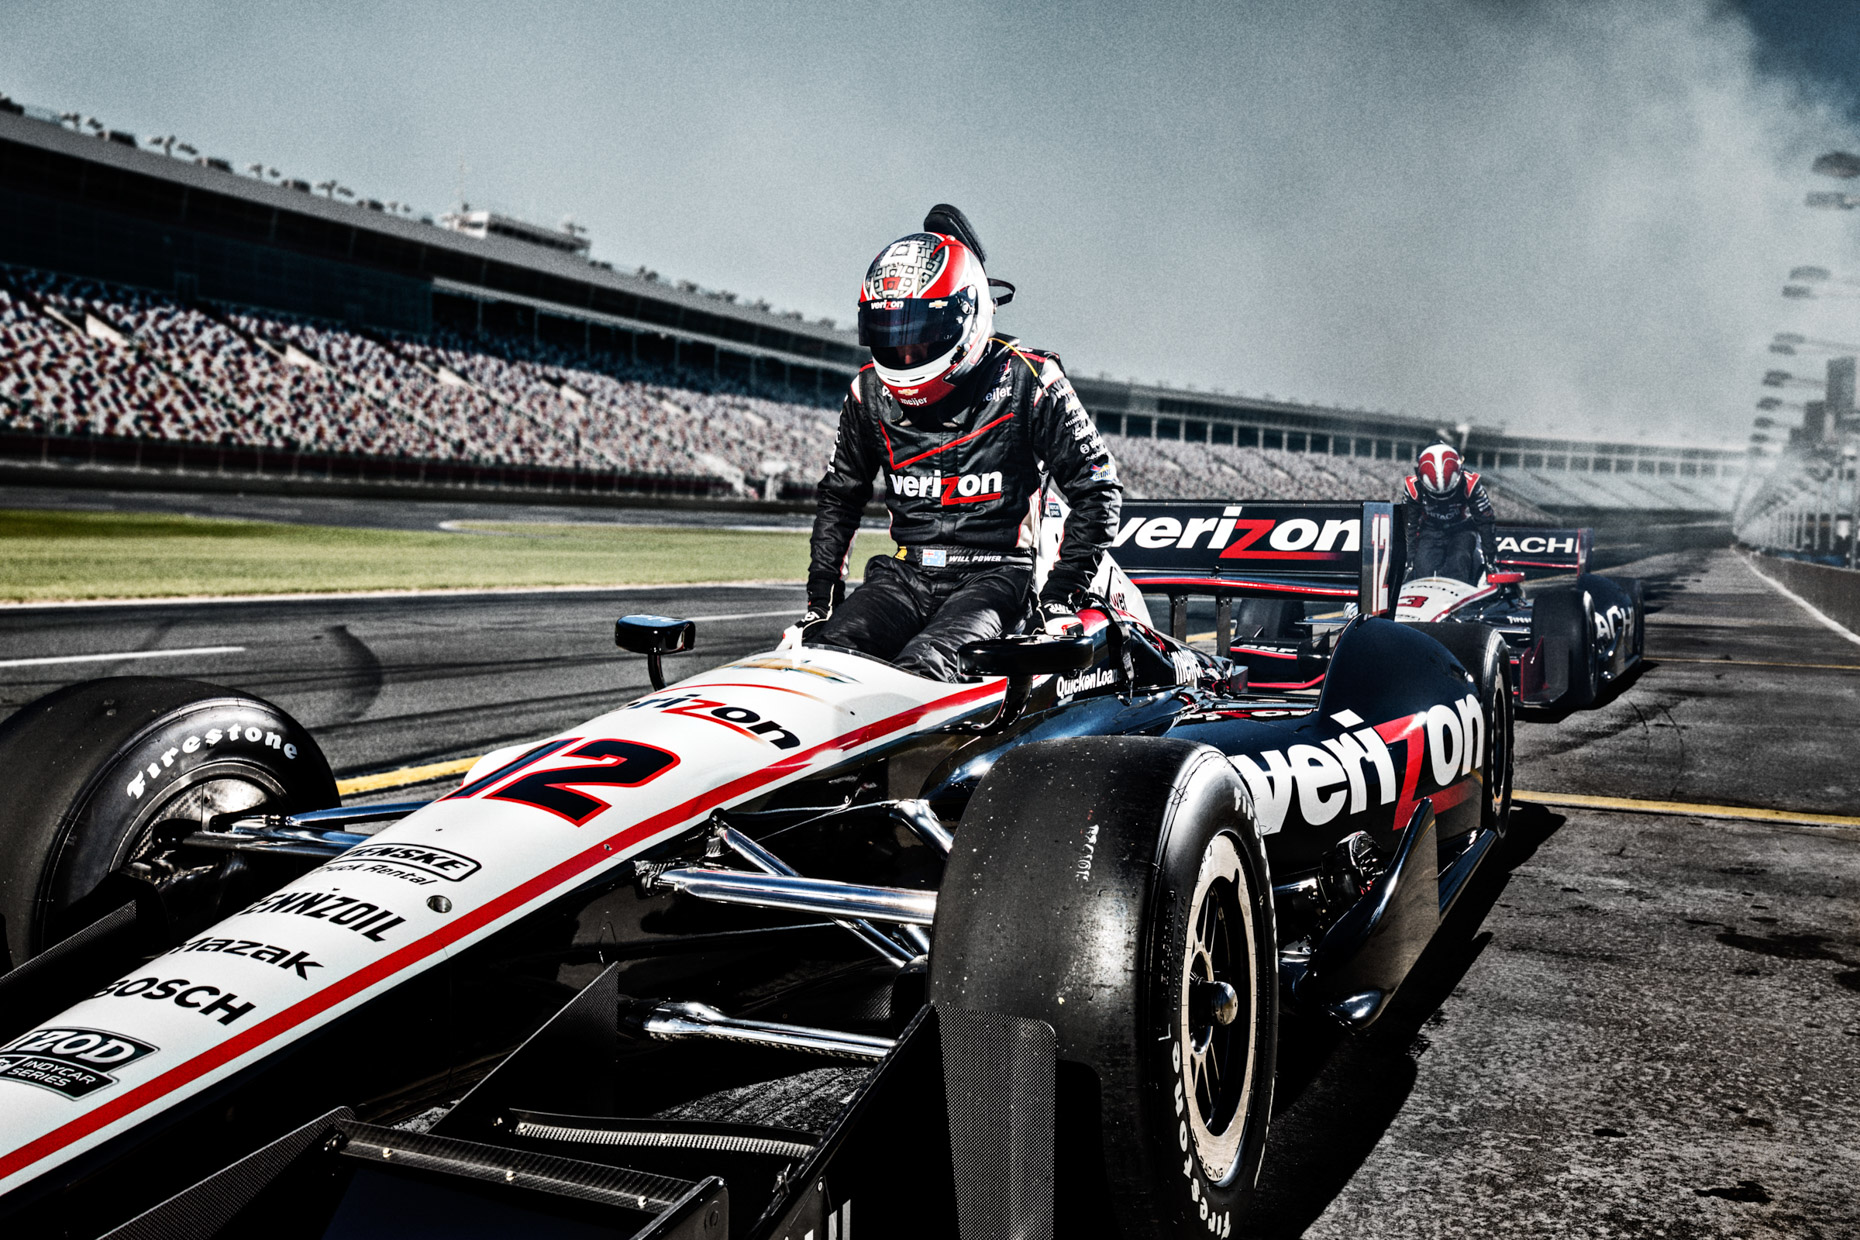 Will Power, Indycar racer